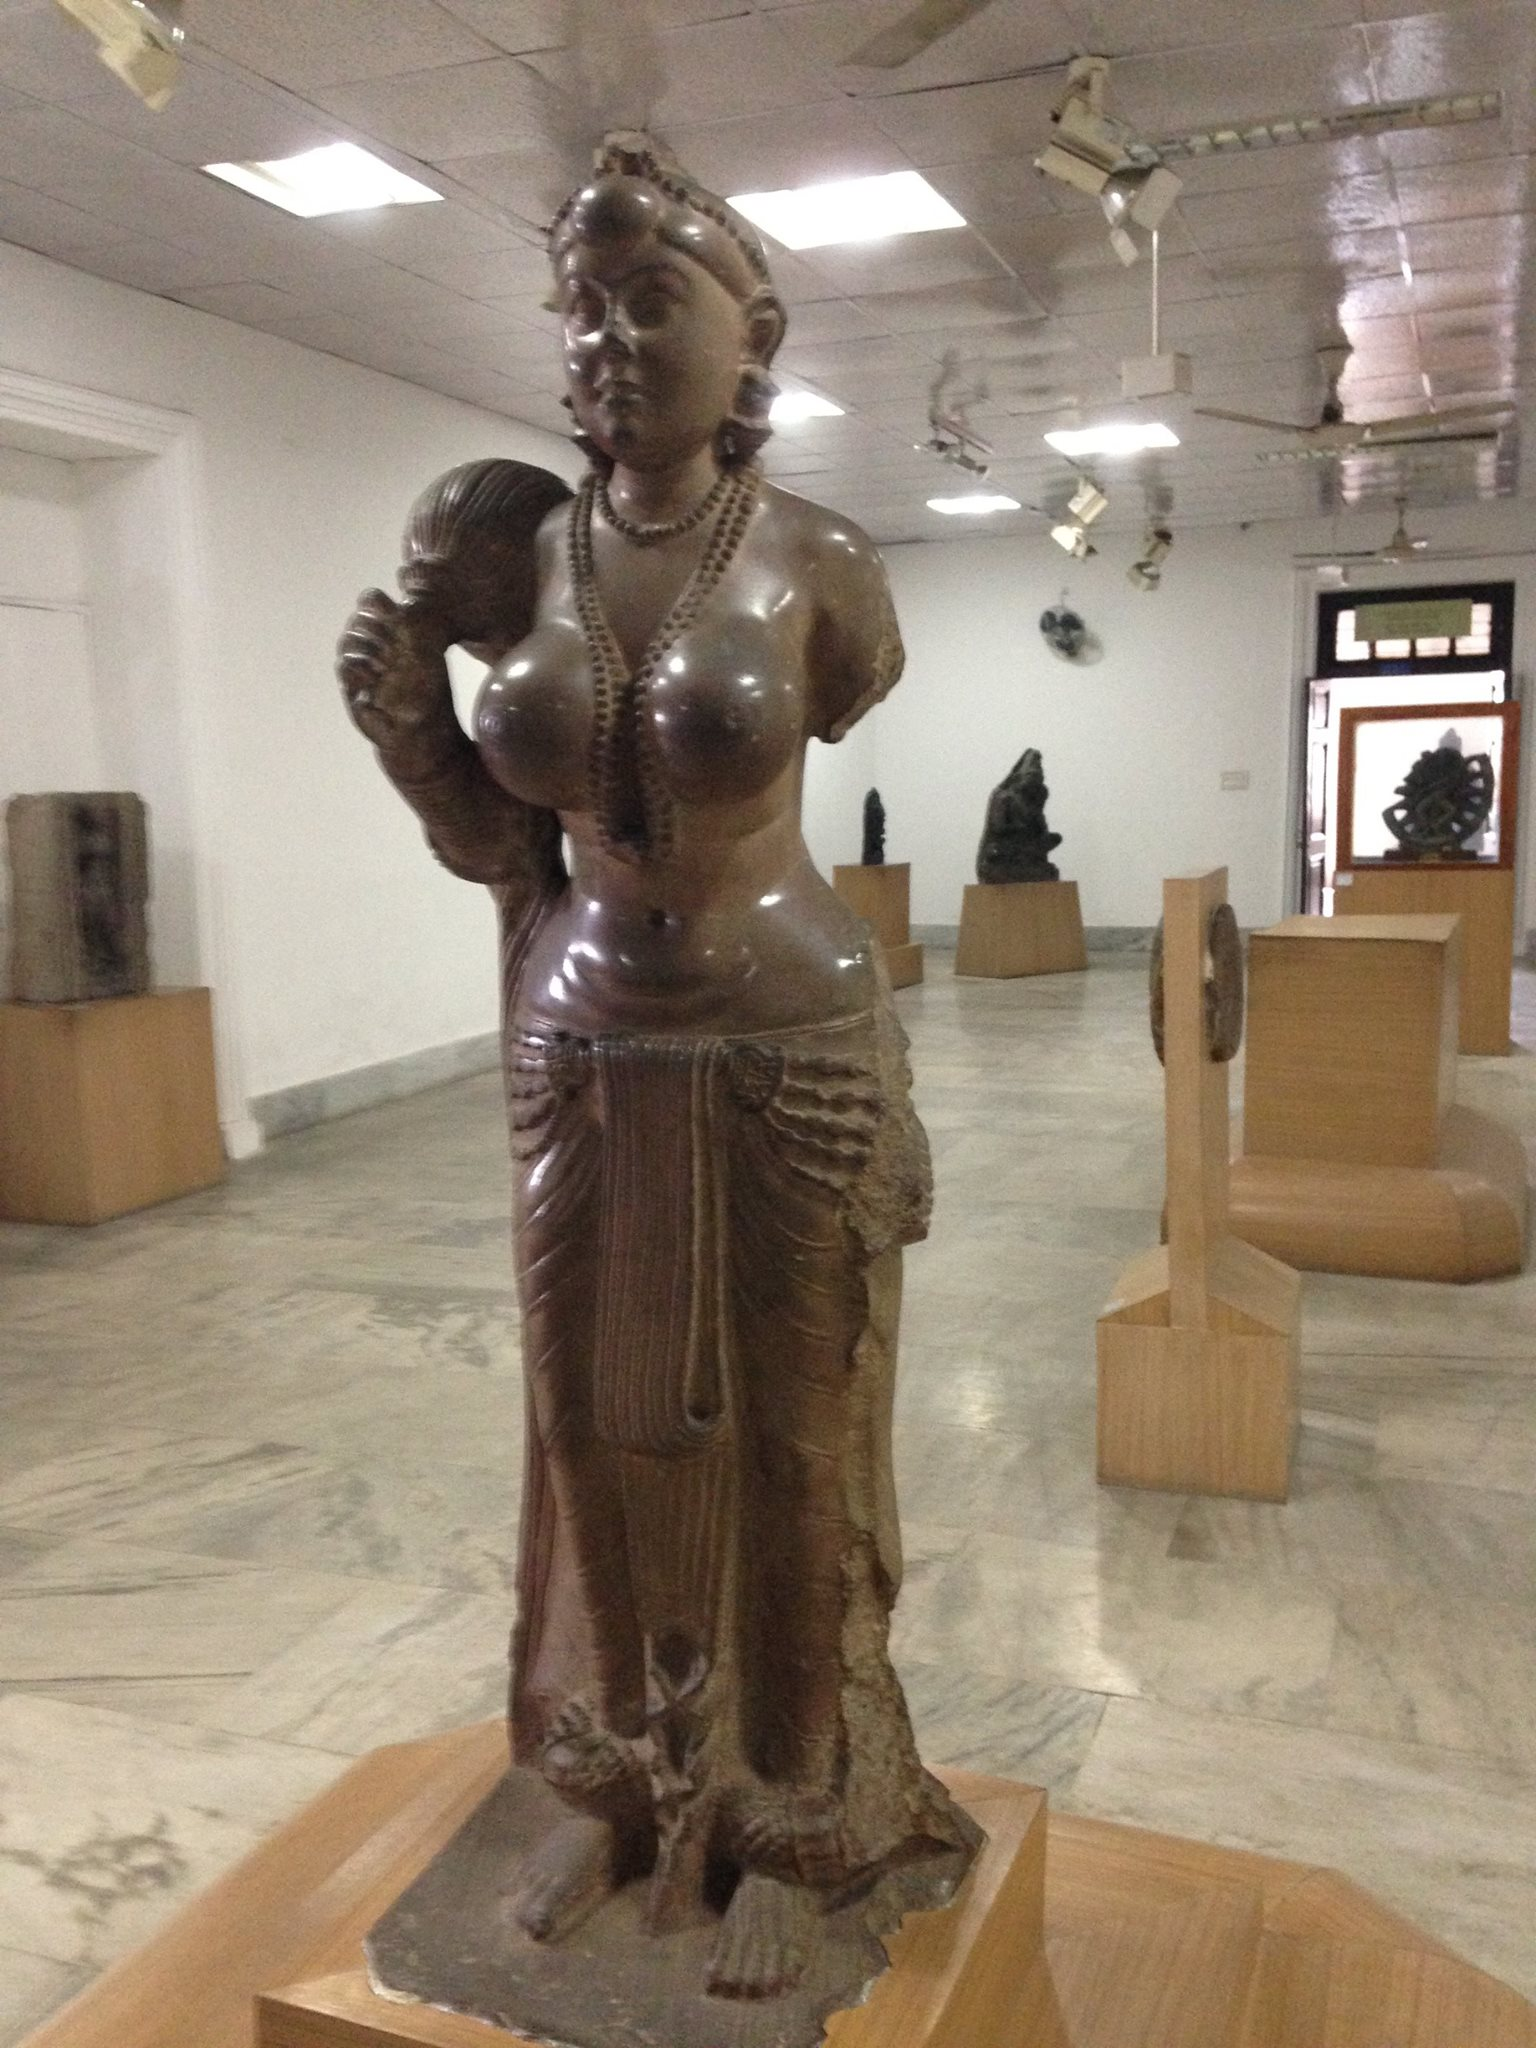 The Didarganj Yakshi. Credit: SV/The Wire